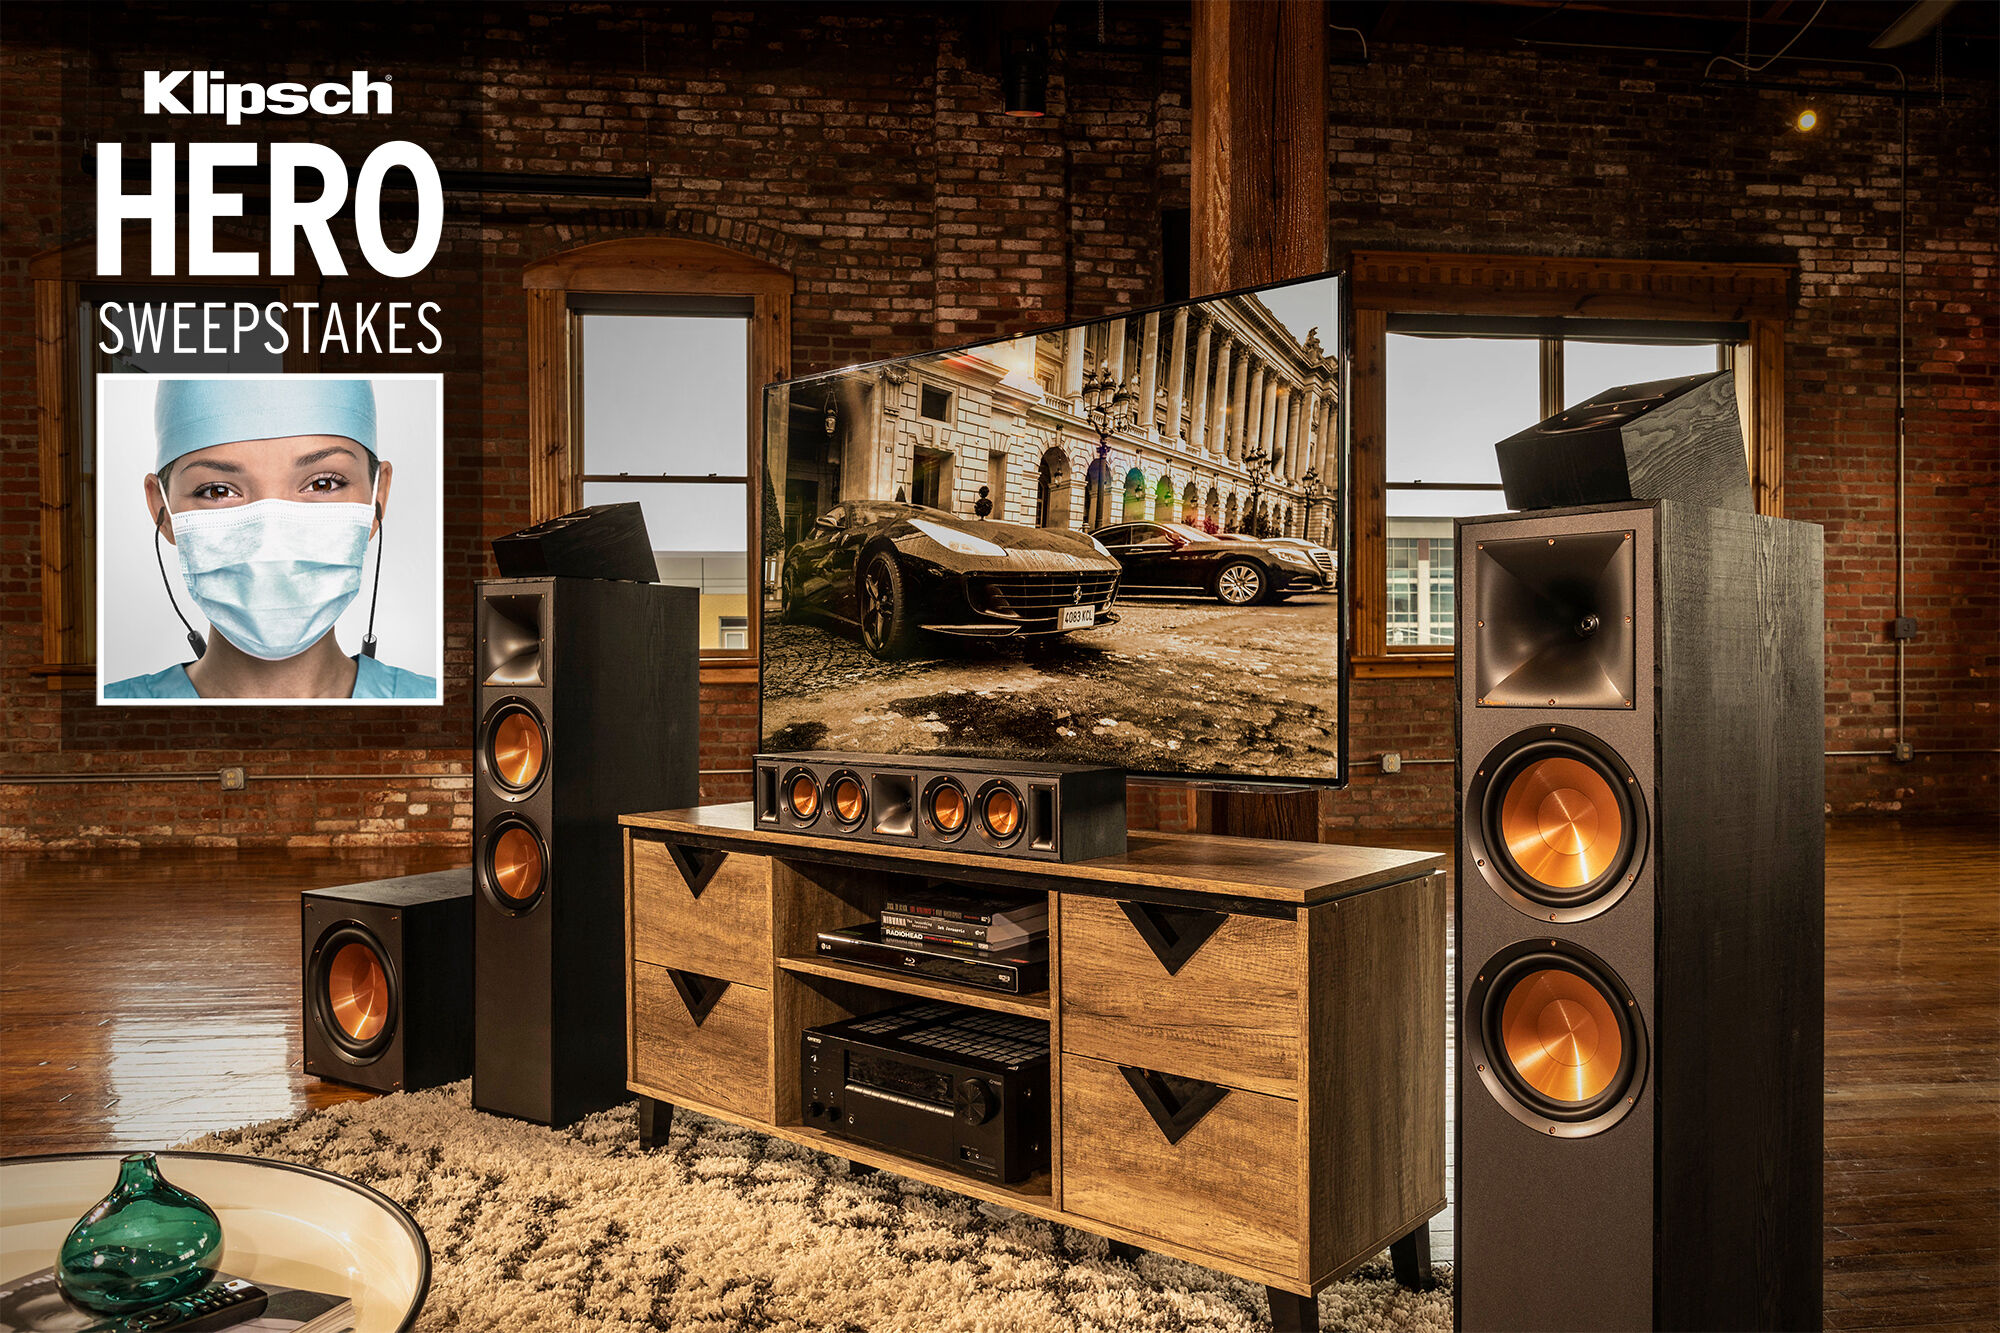 Klipsch Hero Sweepstakes promo box